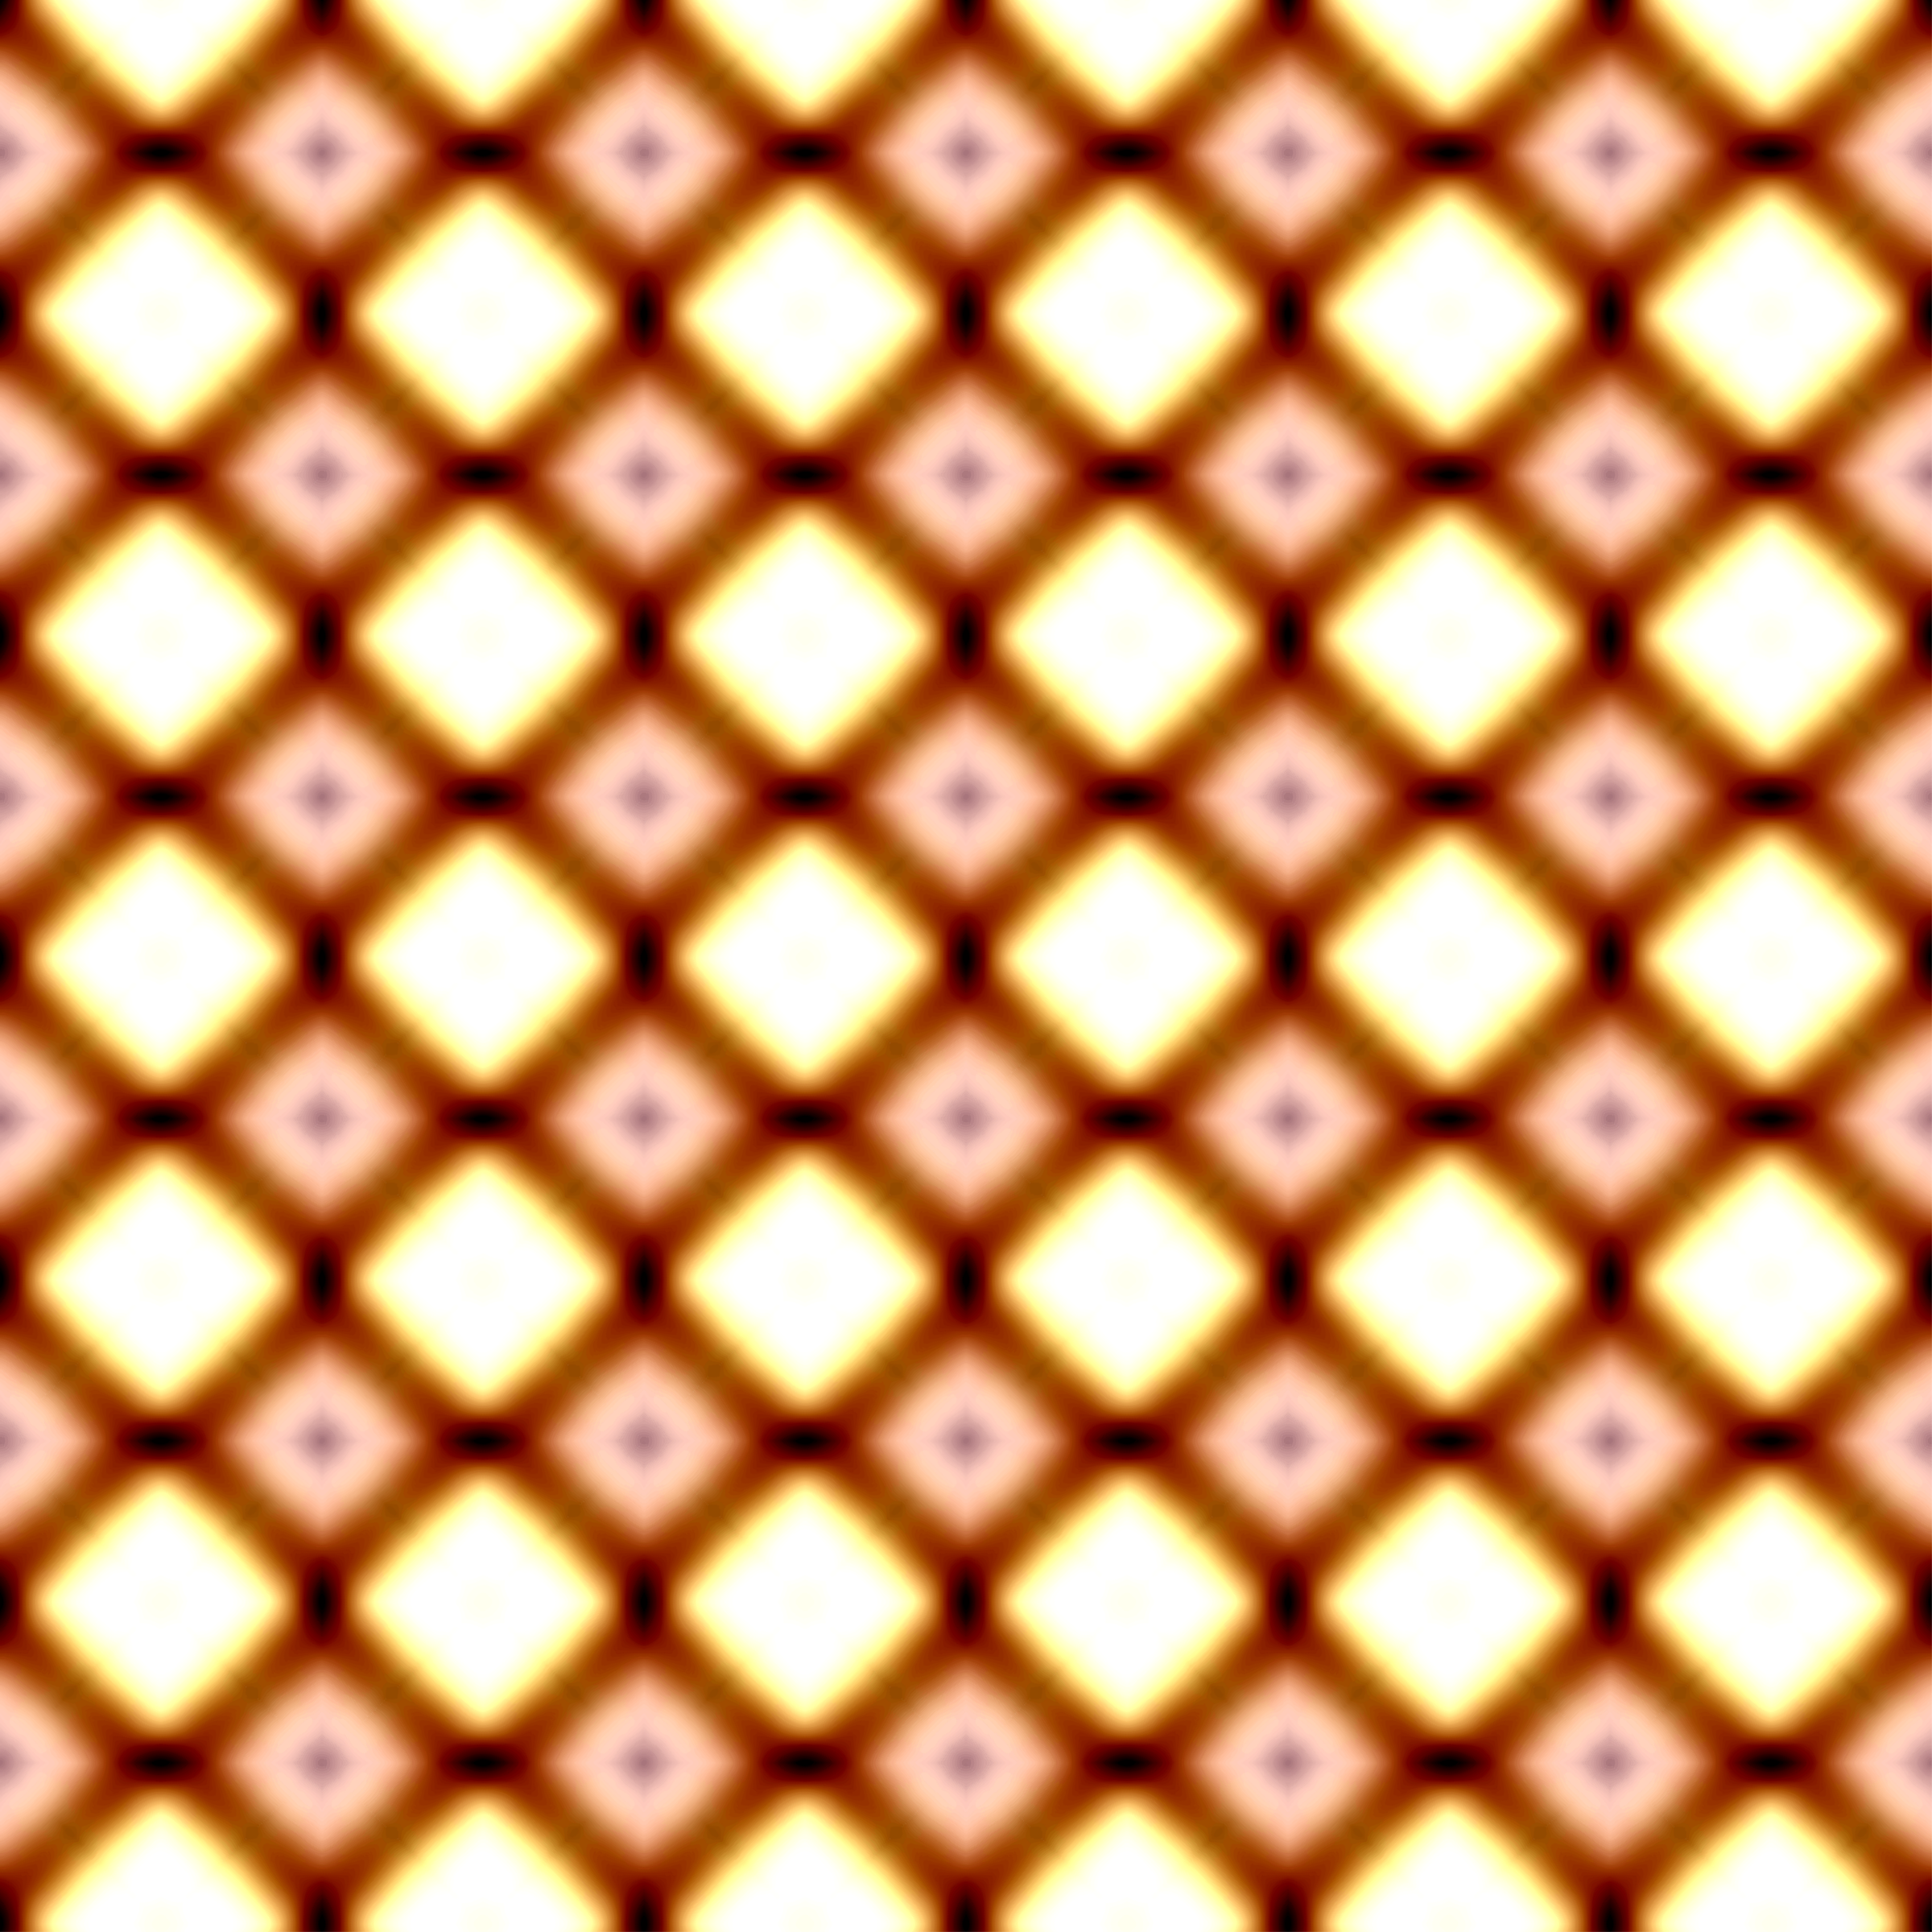 Background pattern 275 (colour 2) by Firkin